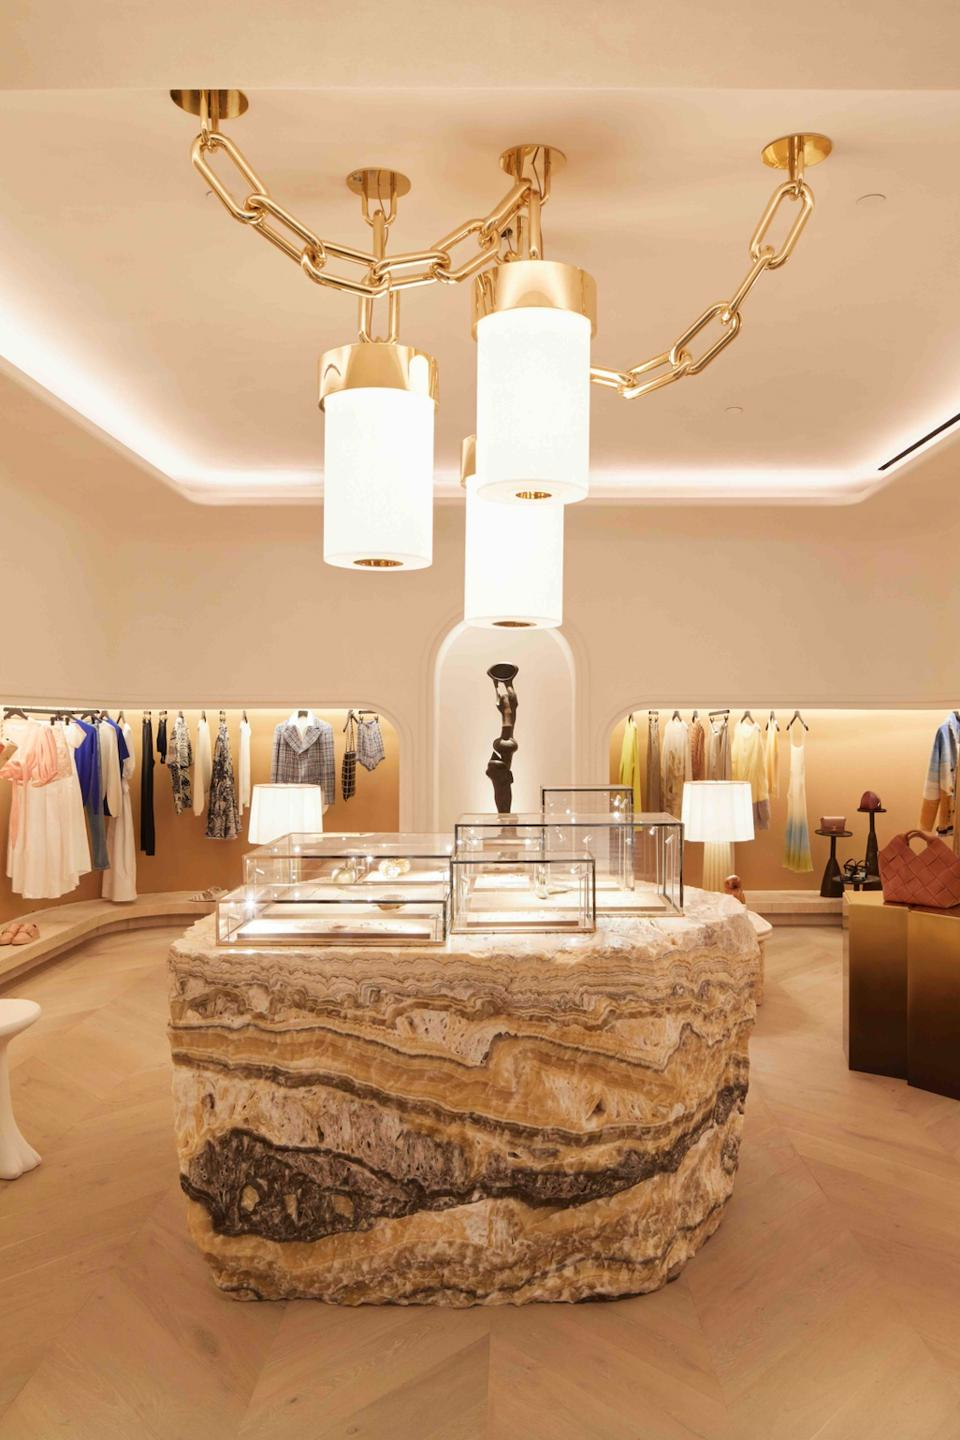 Interior of upscale boutique The Webster at Rosewood Miramar Beach resort featuring wood floors, recessed lighting clothing racks, and massive rock display table placed underneath three-lantern lighting fixtures adorned with a heavy chain.